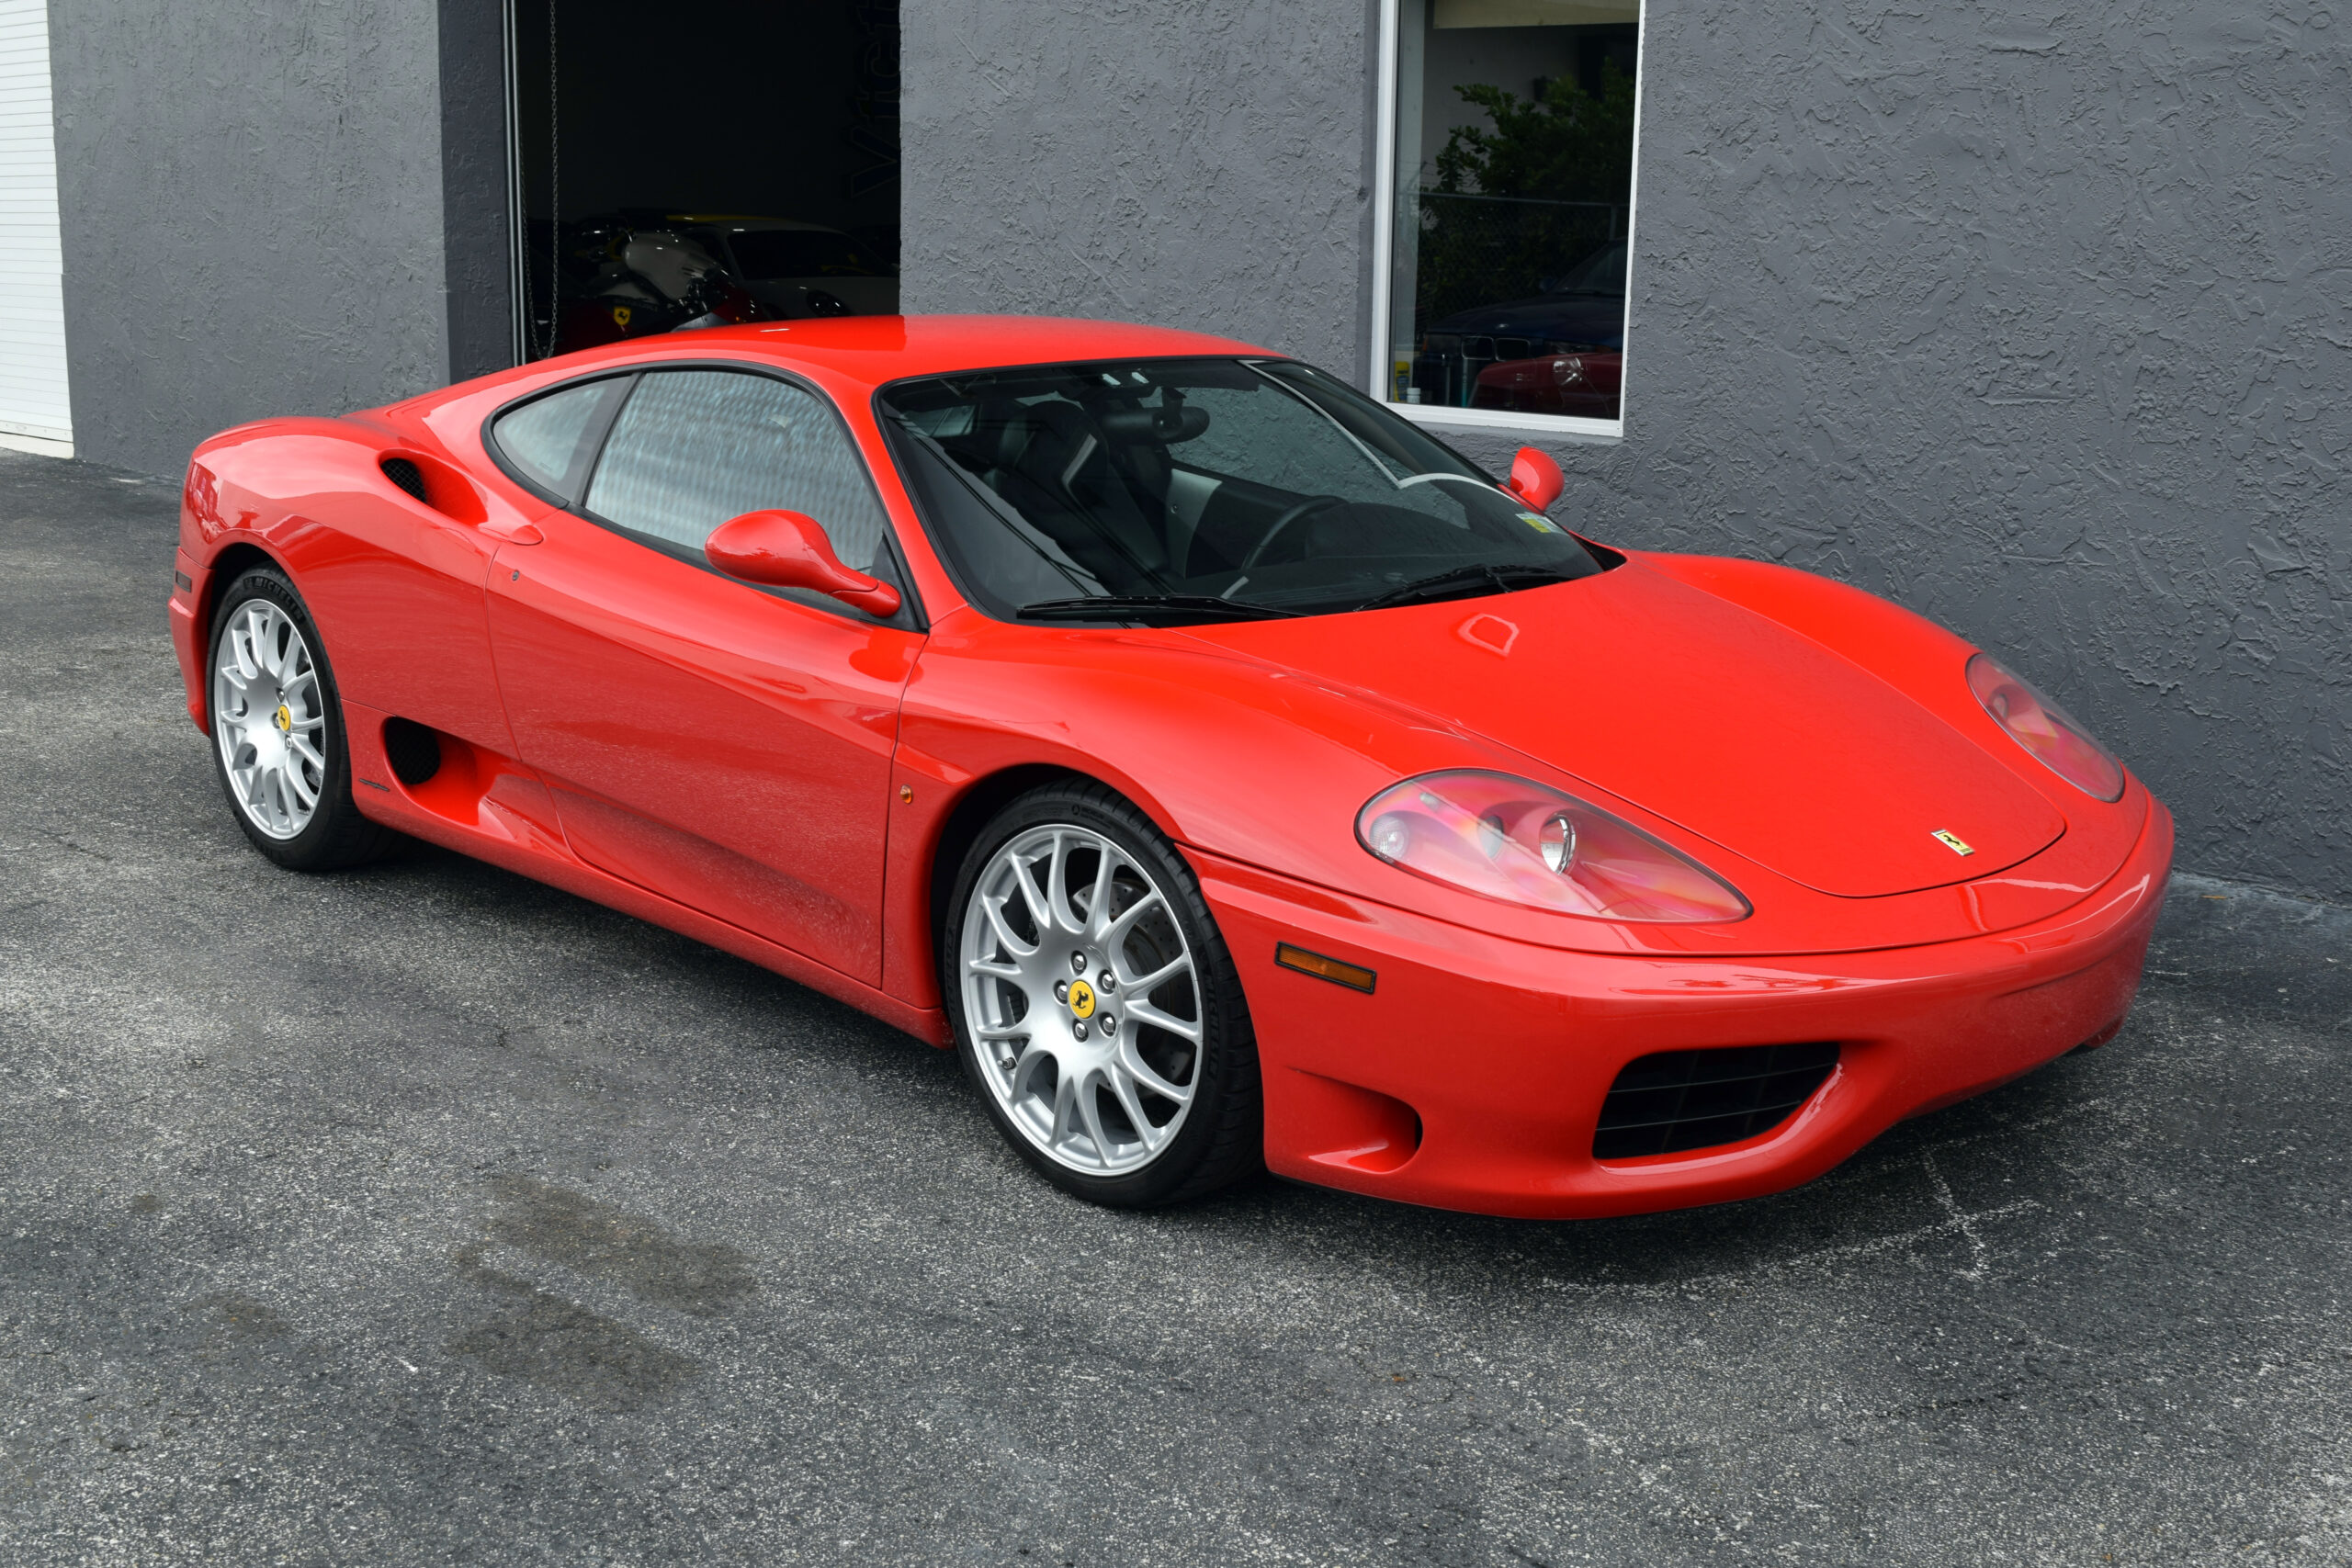 1999 Ferrari 360 Modena Coupe 6-Speed Gated 6-Speed! low miles, Challenge Stradale Wheels and Grille, current belt